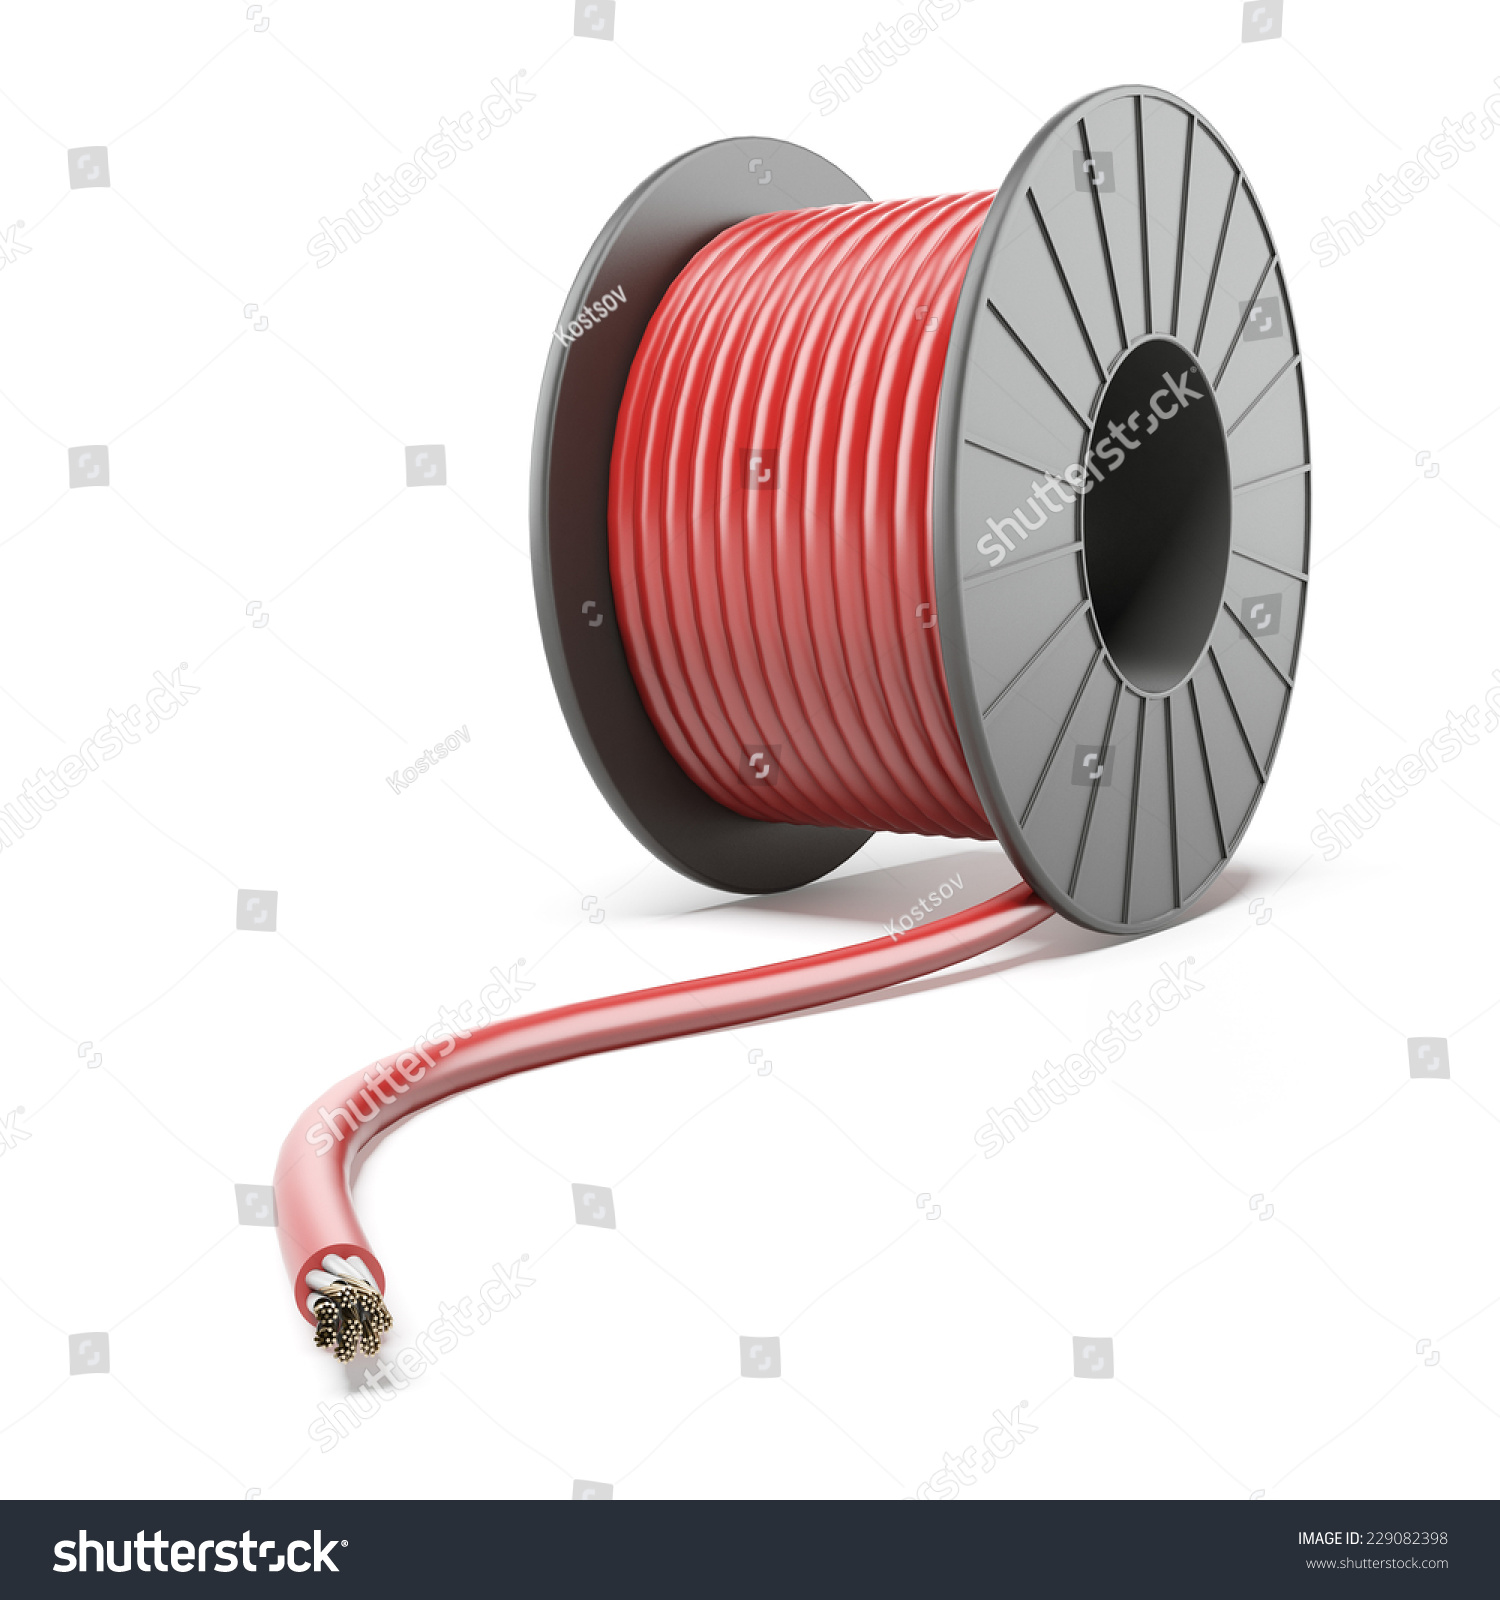 Bury High Voltage Power Cables : High voltage power cable stock photo shutterstock